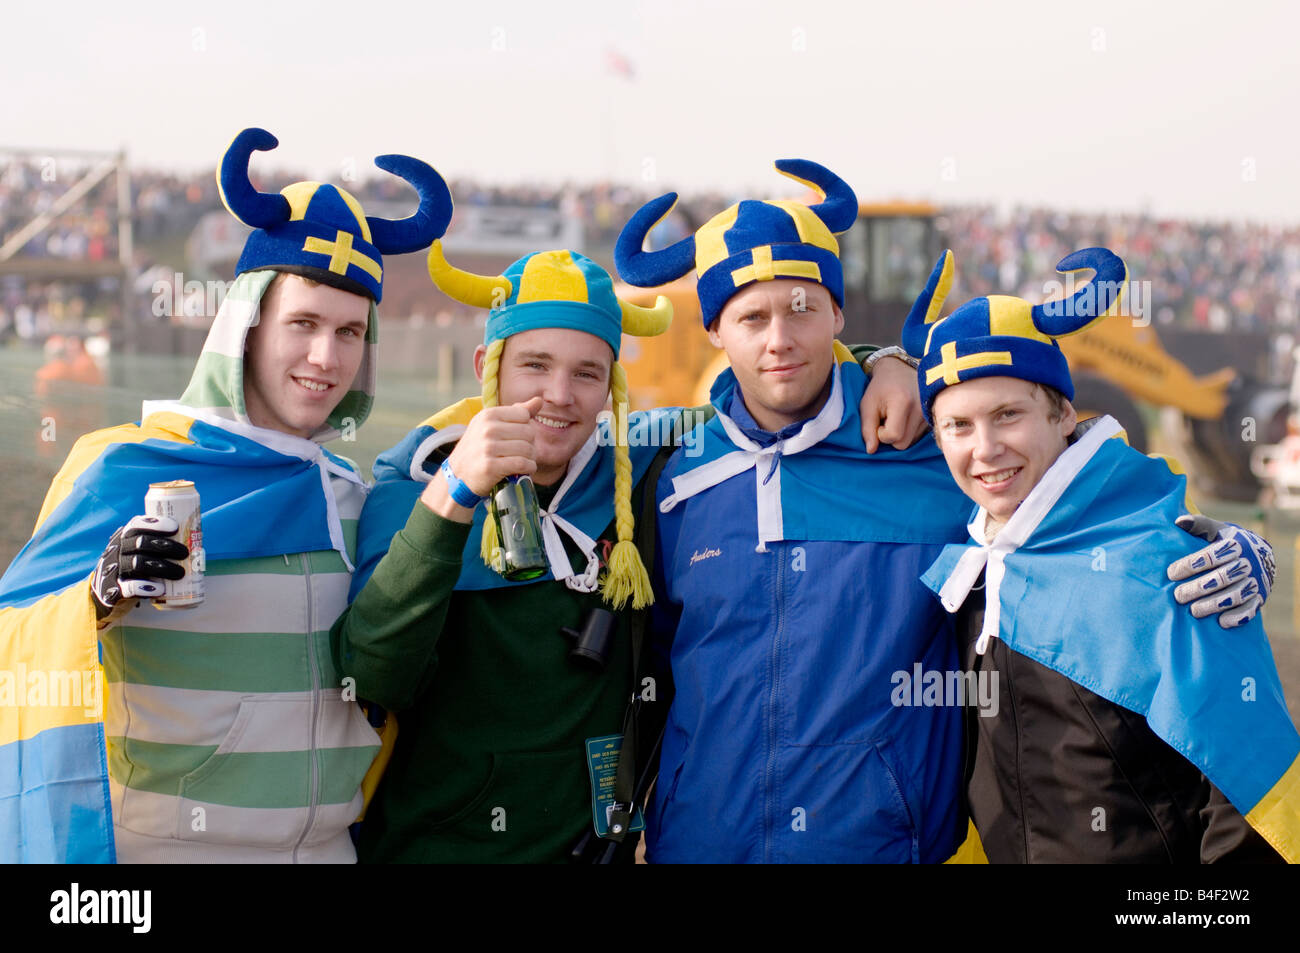 swedish fans spectators sweden nation pride flag yellow and blue at sporting event viking helmet helmets good natured - Stock Image